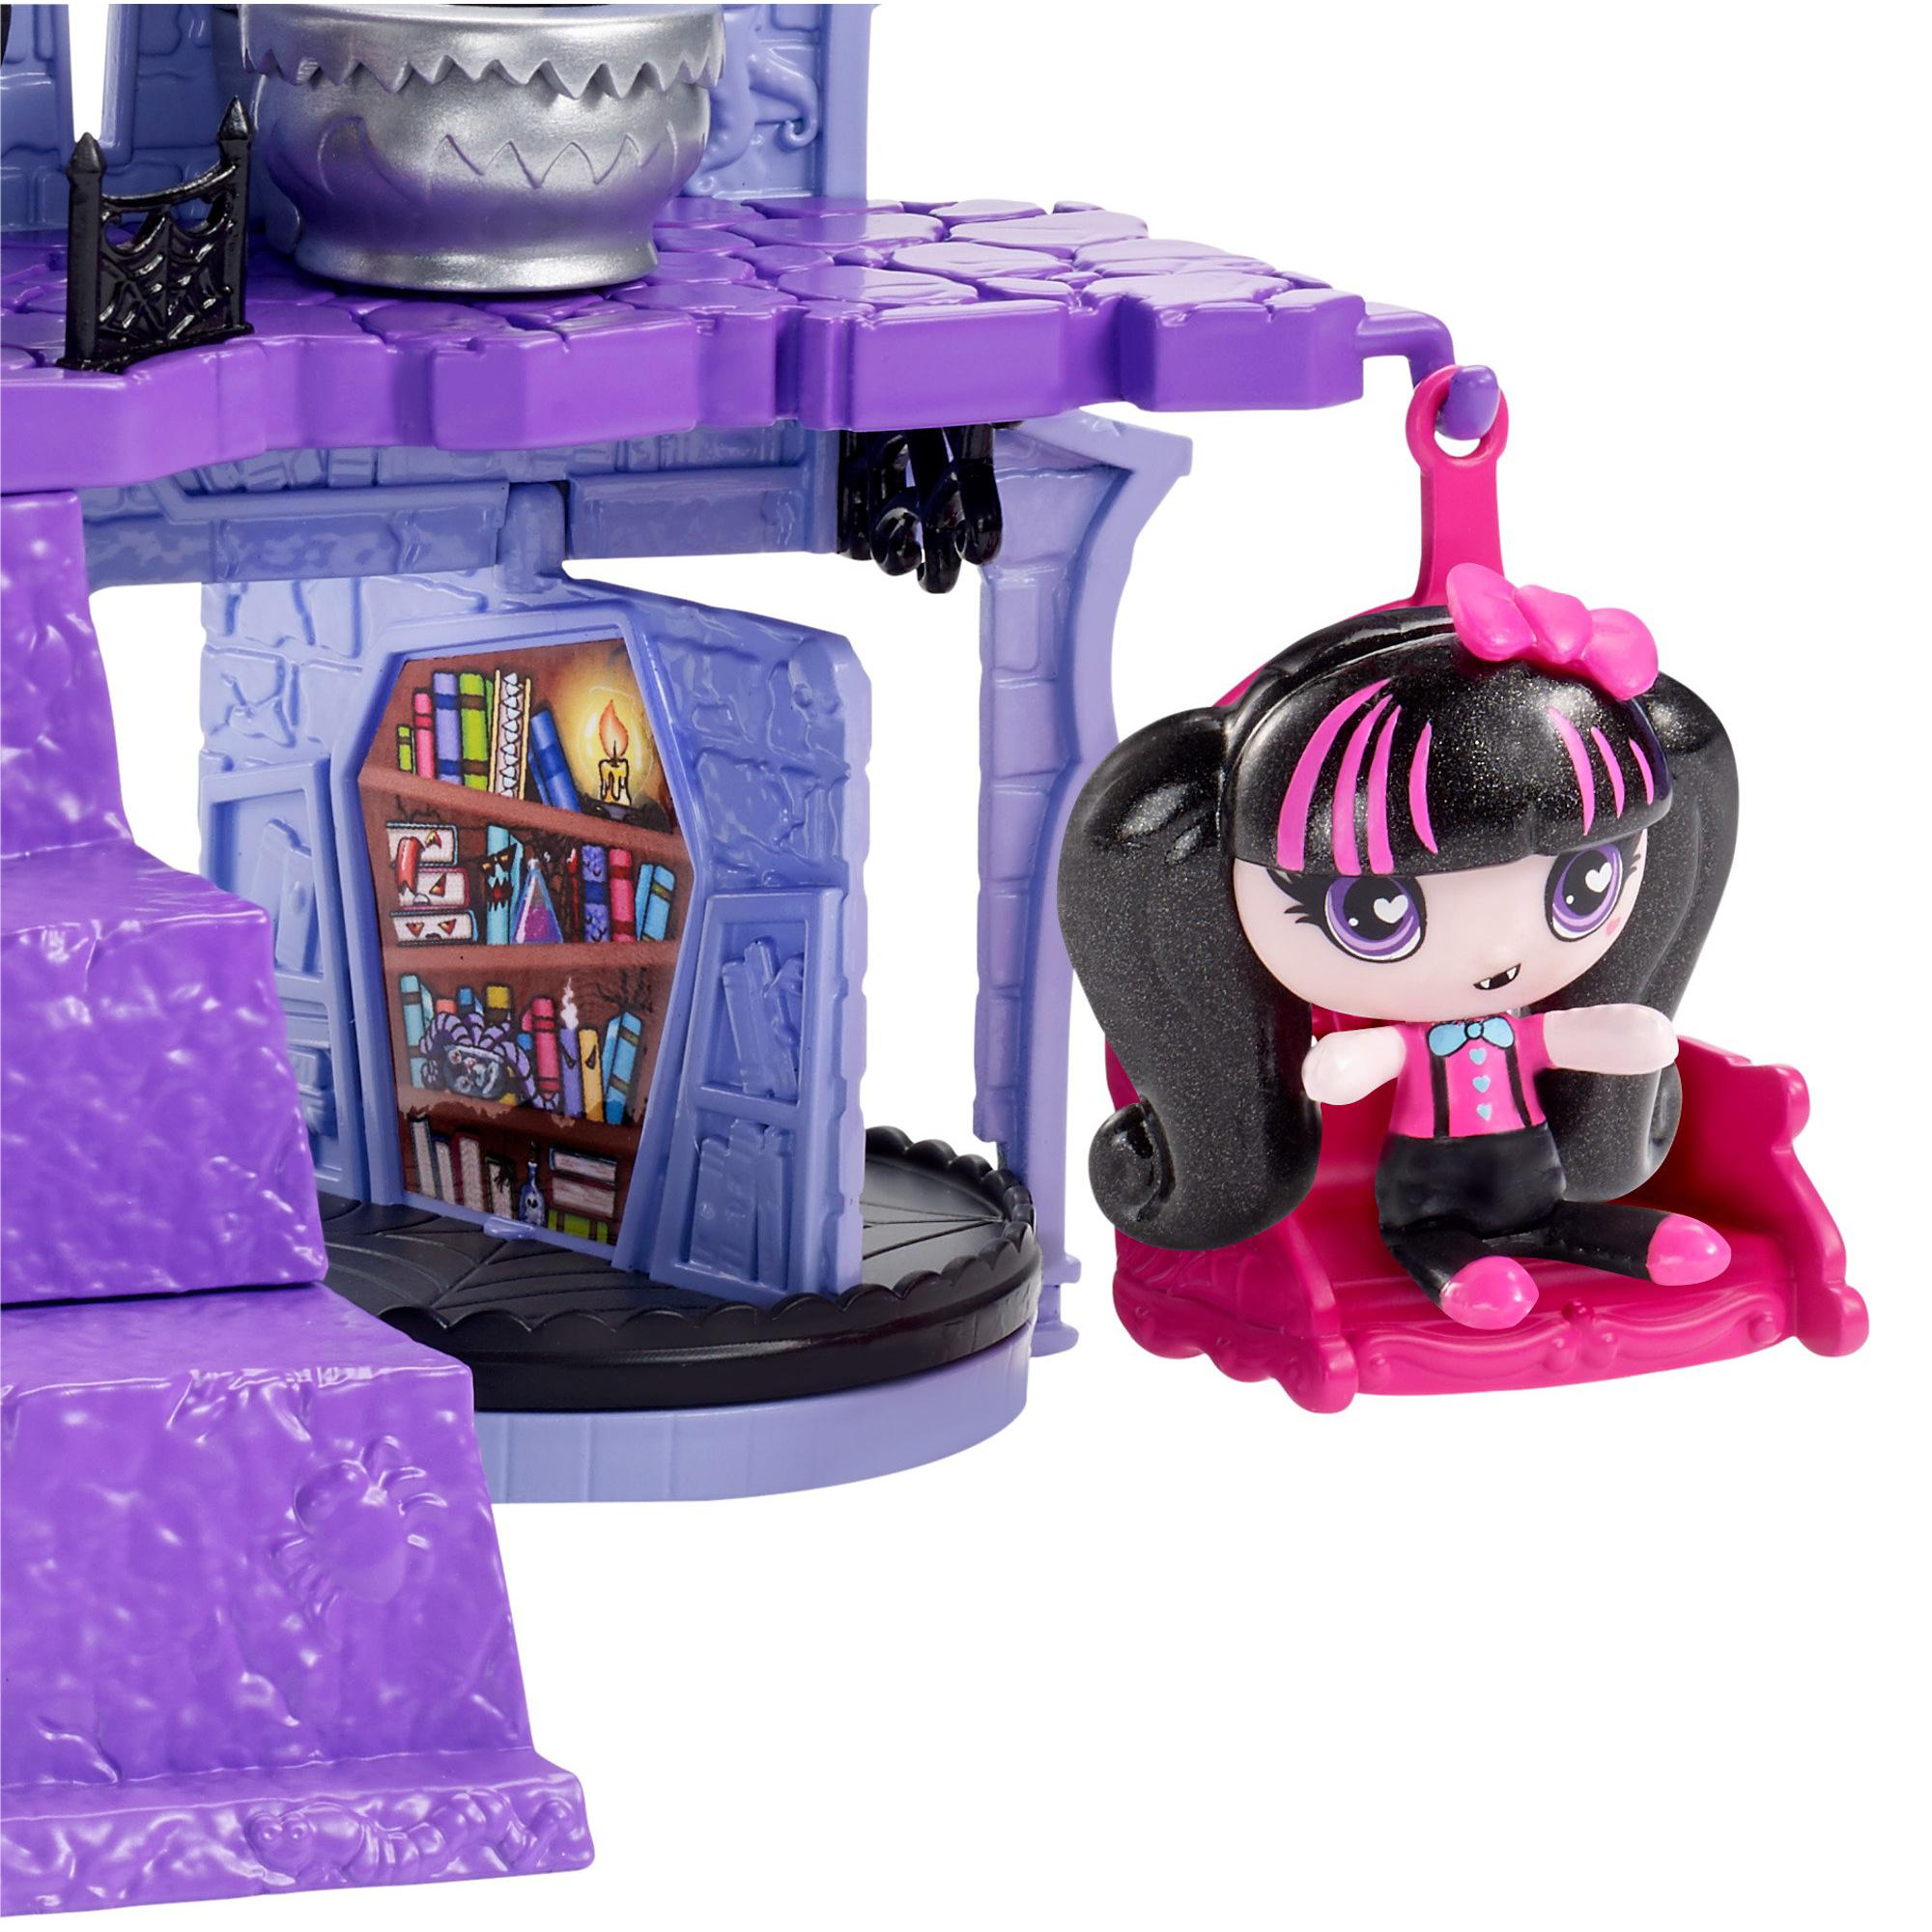 Monster High Minis Playset by Mattel